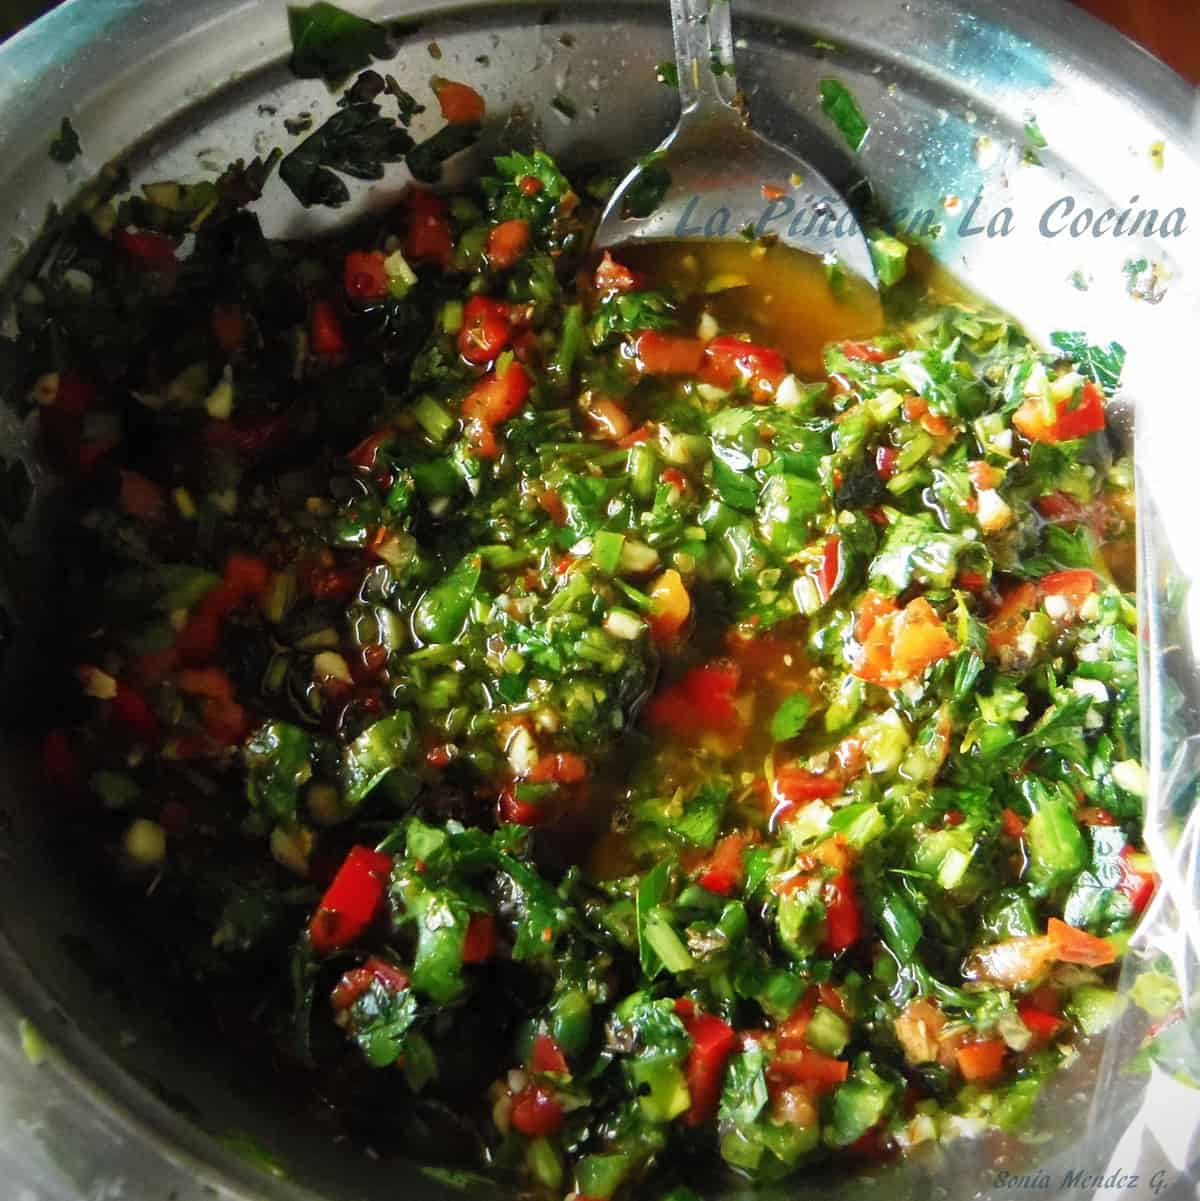 Finely chopped chimichurri, delicious! Finely chopped chimichurri the next day, fantastic!